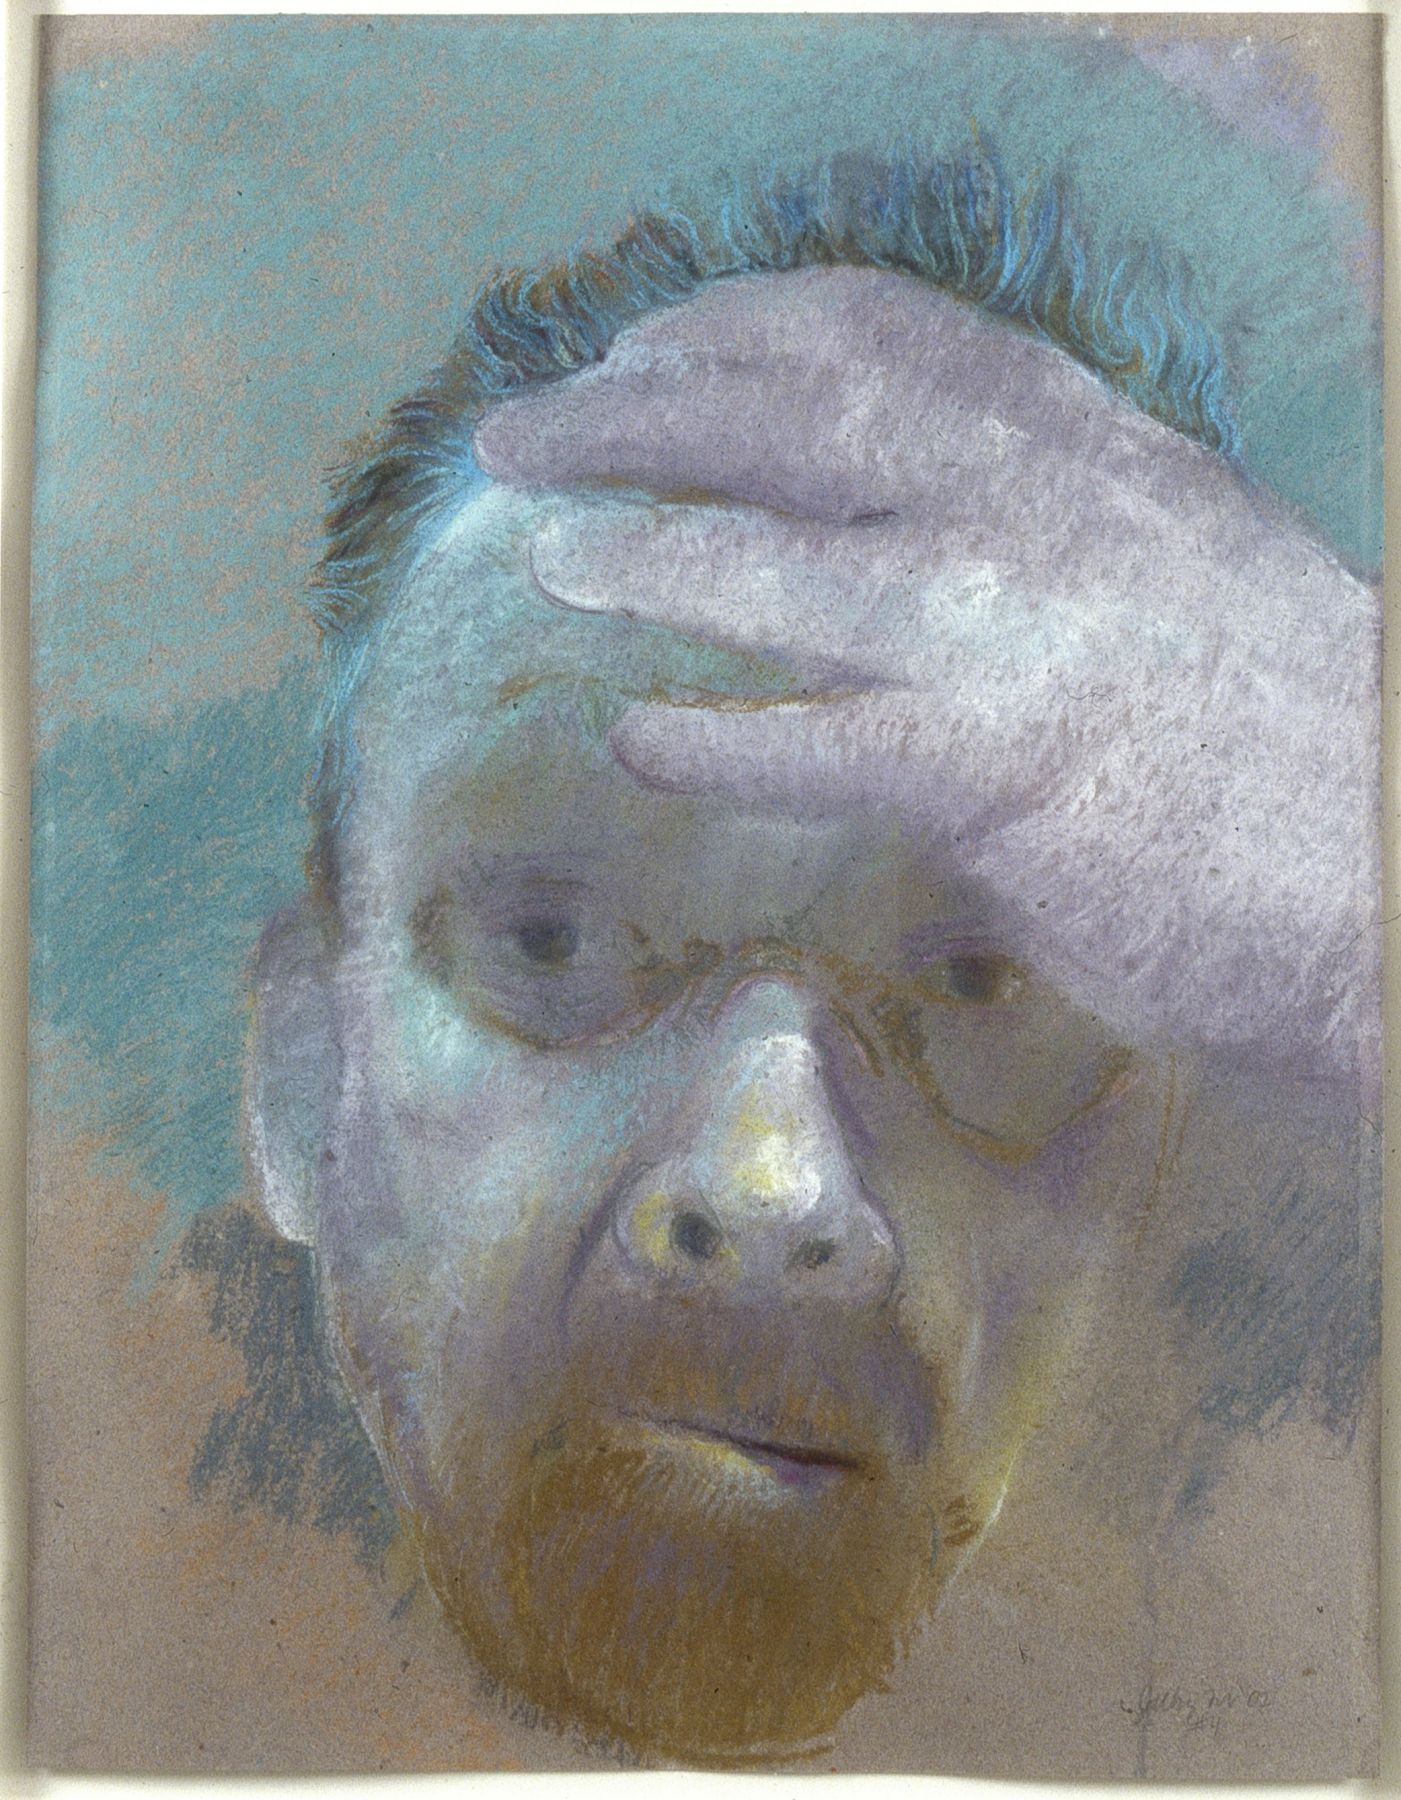 Jimmy Wright, Self No. 4, 2002, pastel on paper, 25 1/2 x 19 1/2 inches